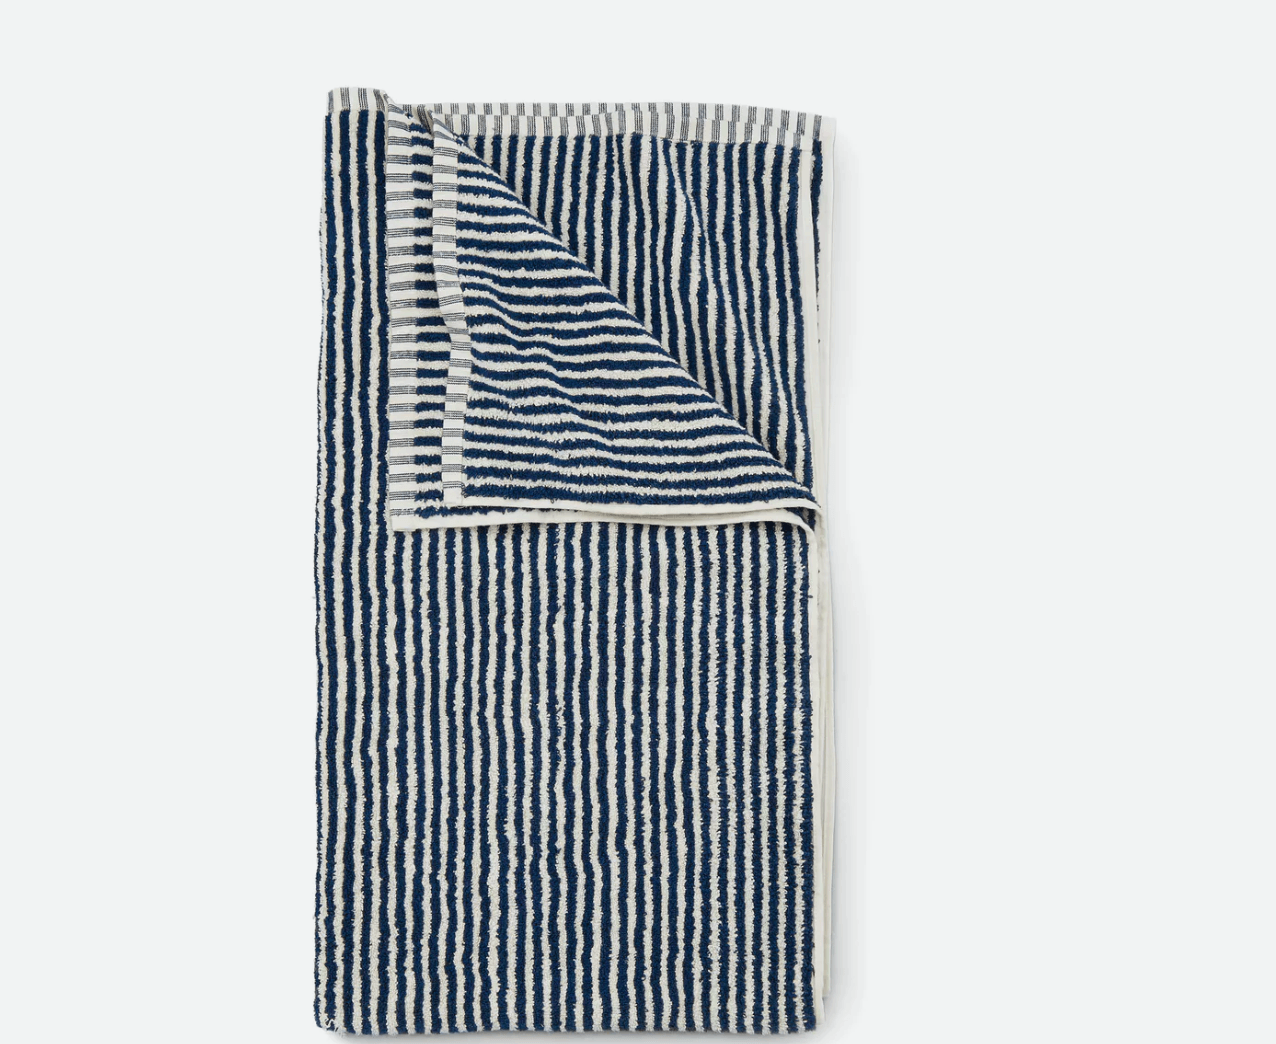 The Striped Beach Towel from Huckberry is available in navy/cream (shown above) or spring green/cream; $.98.